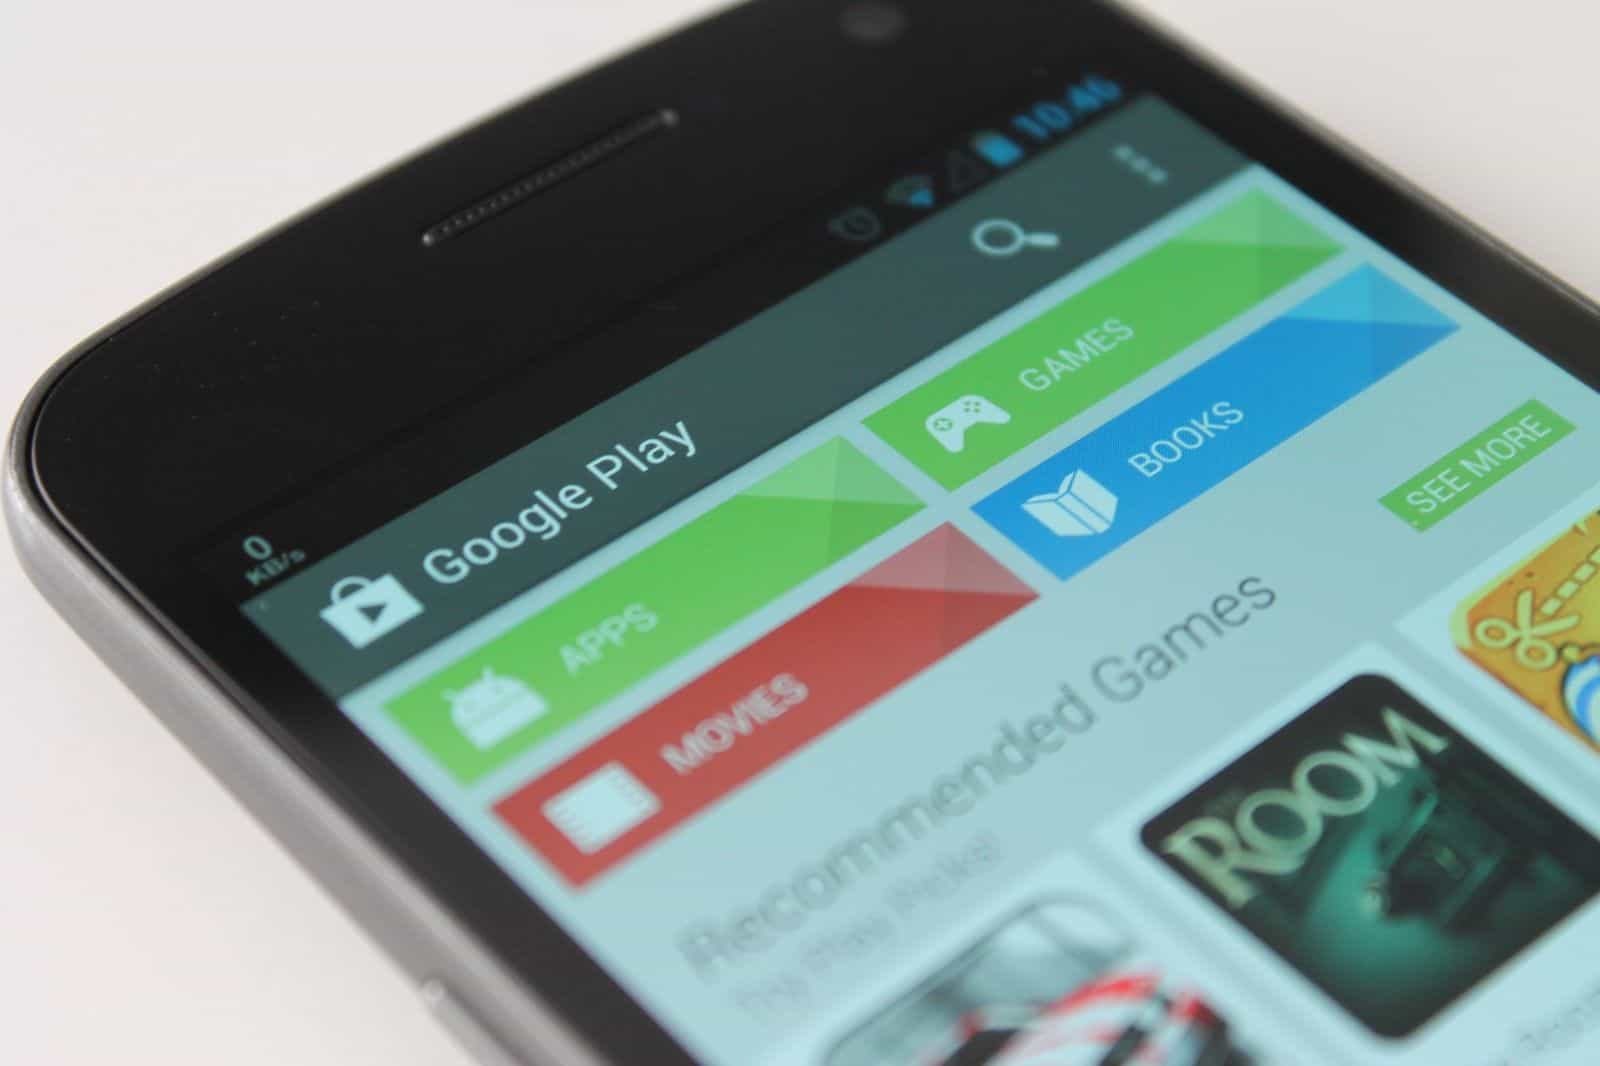 5 Ways to get paid apps for free on Android (legally)